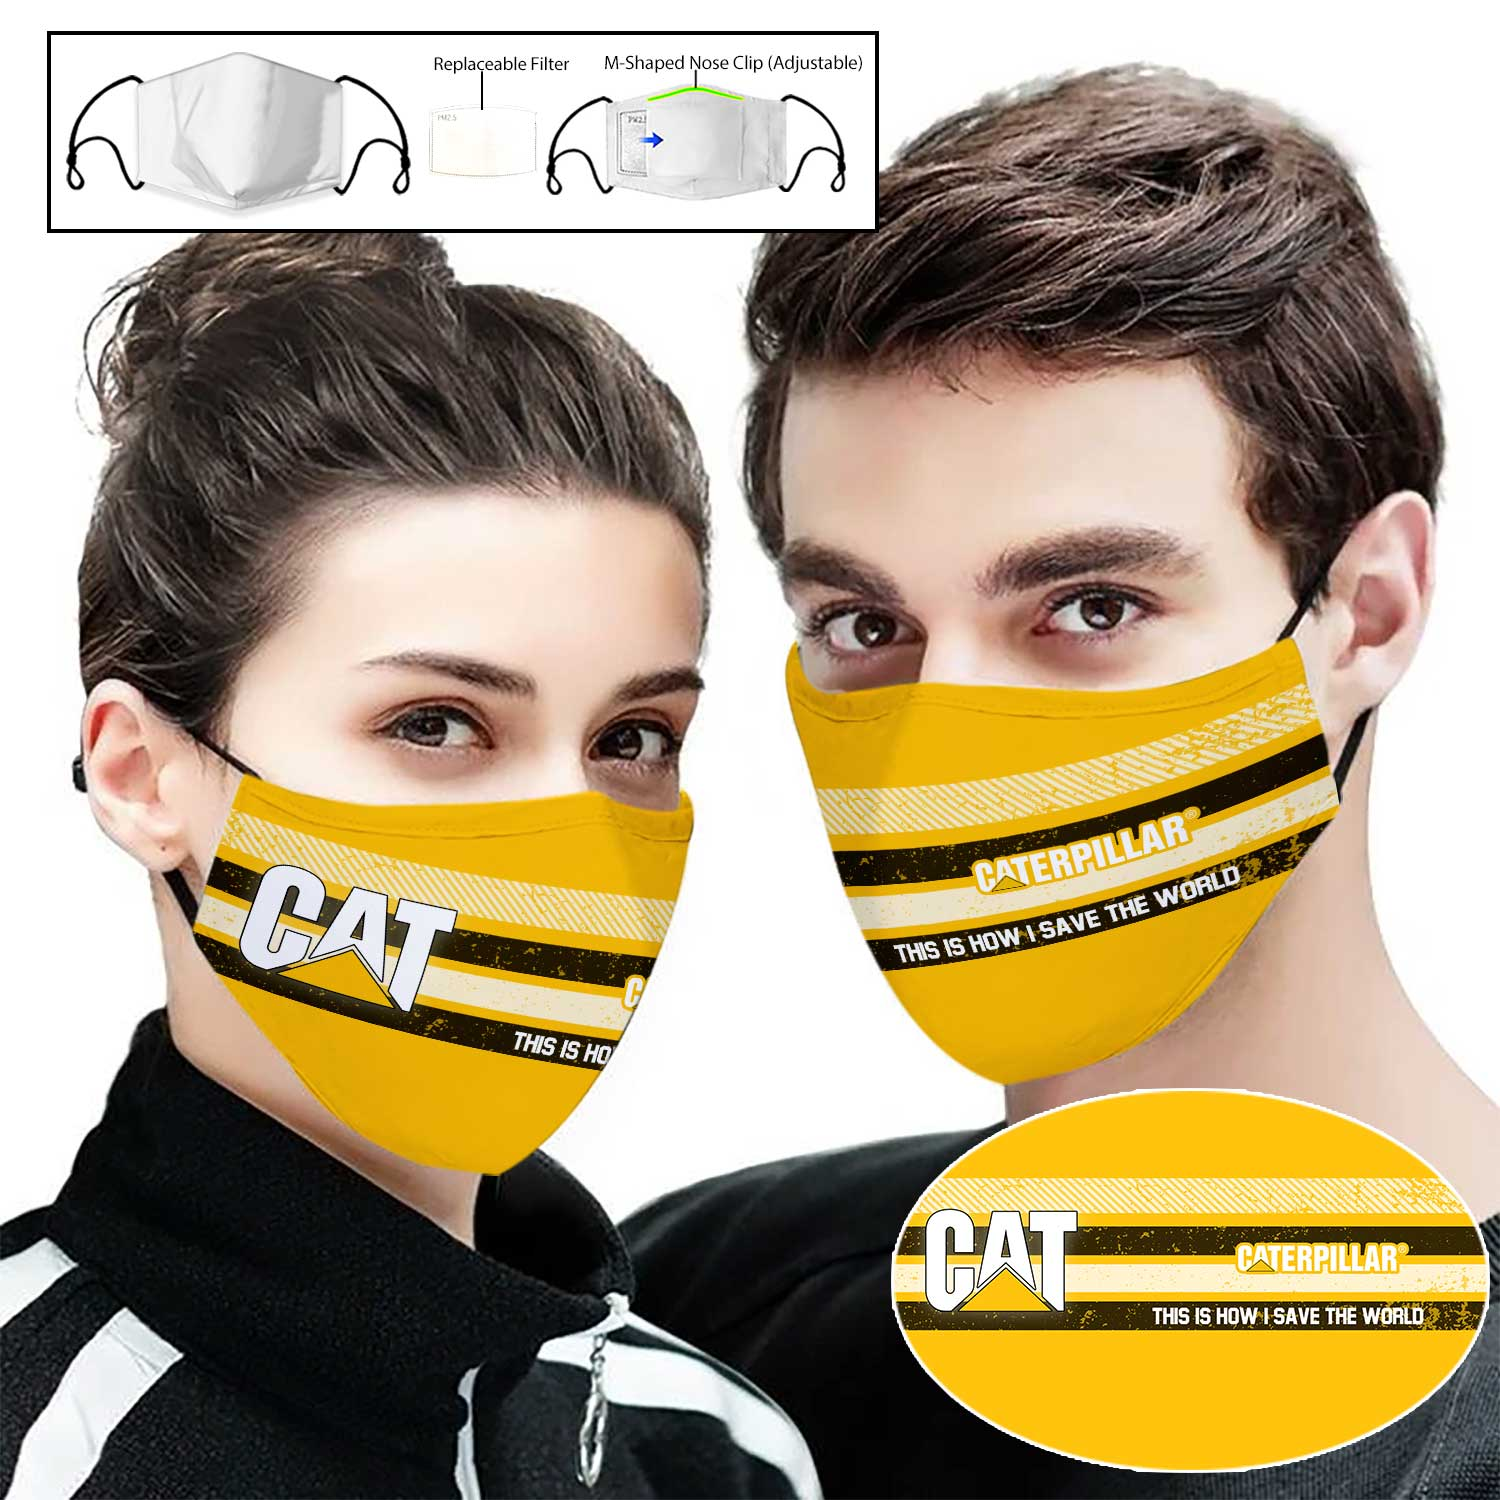 Caterpillar inc this is how i save the world full printing face mask 2